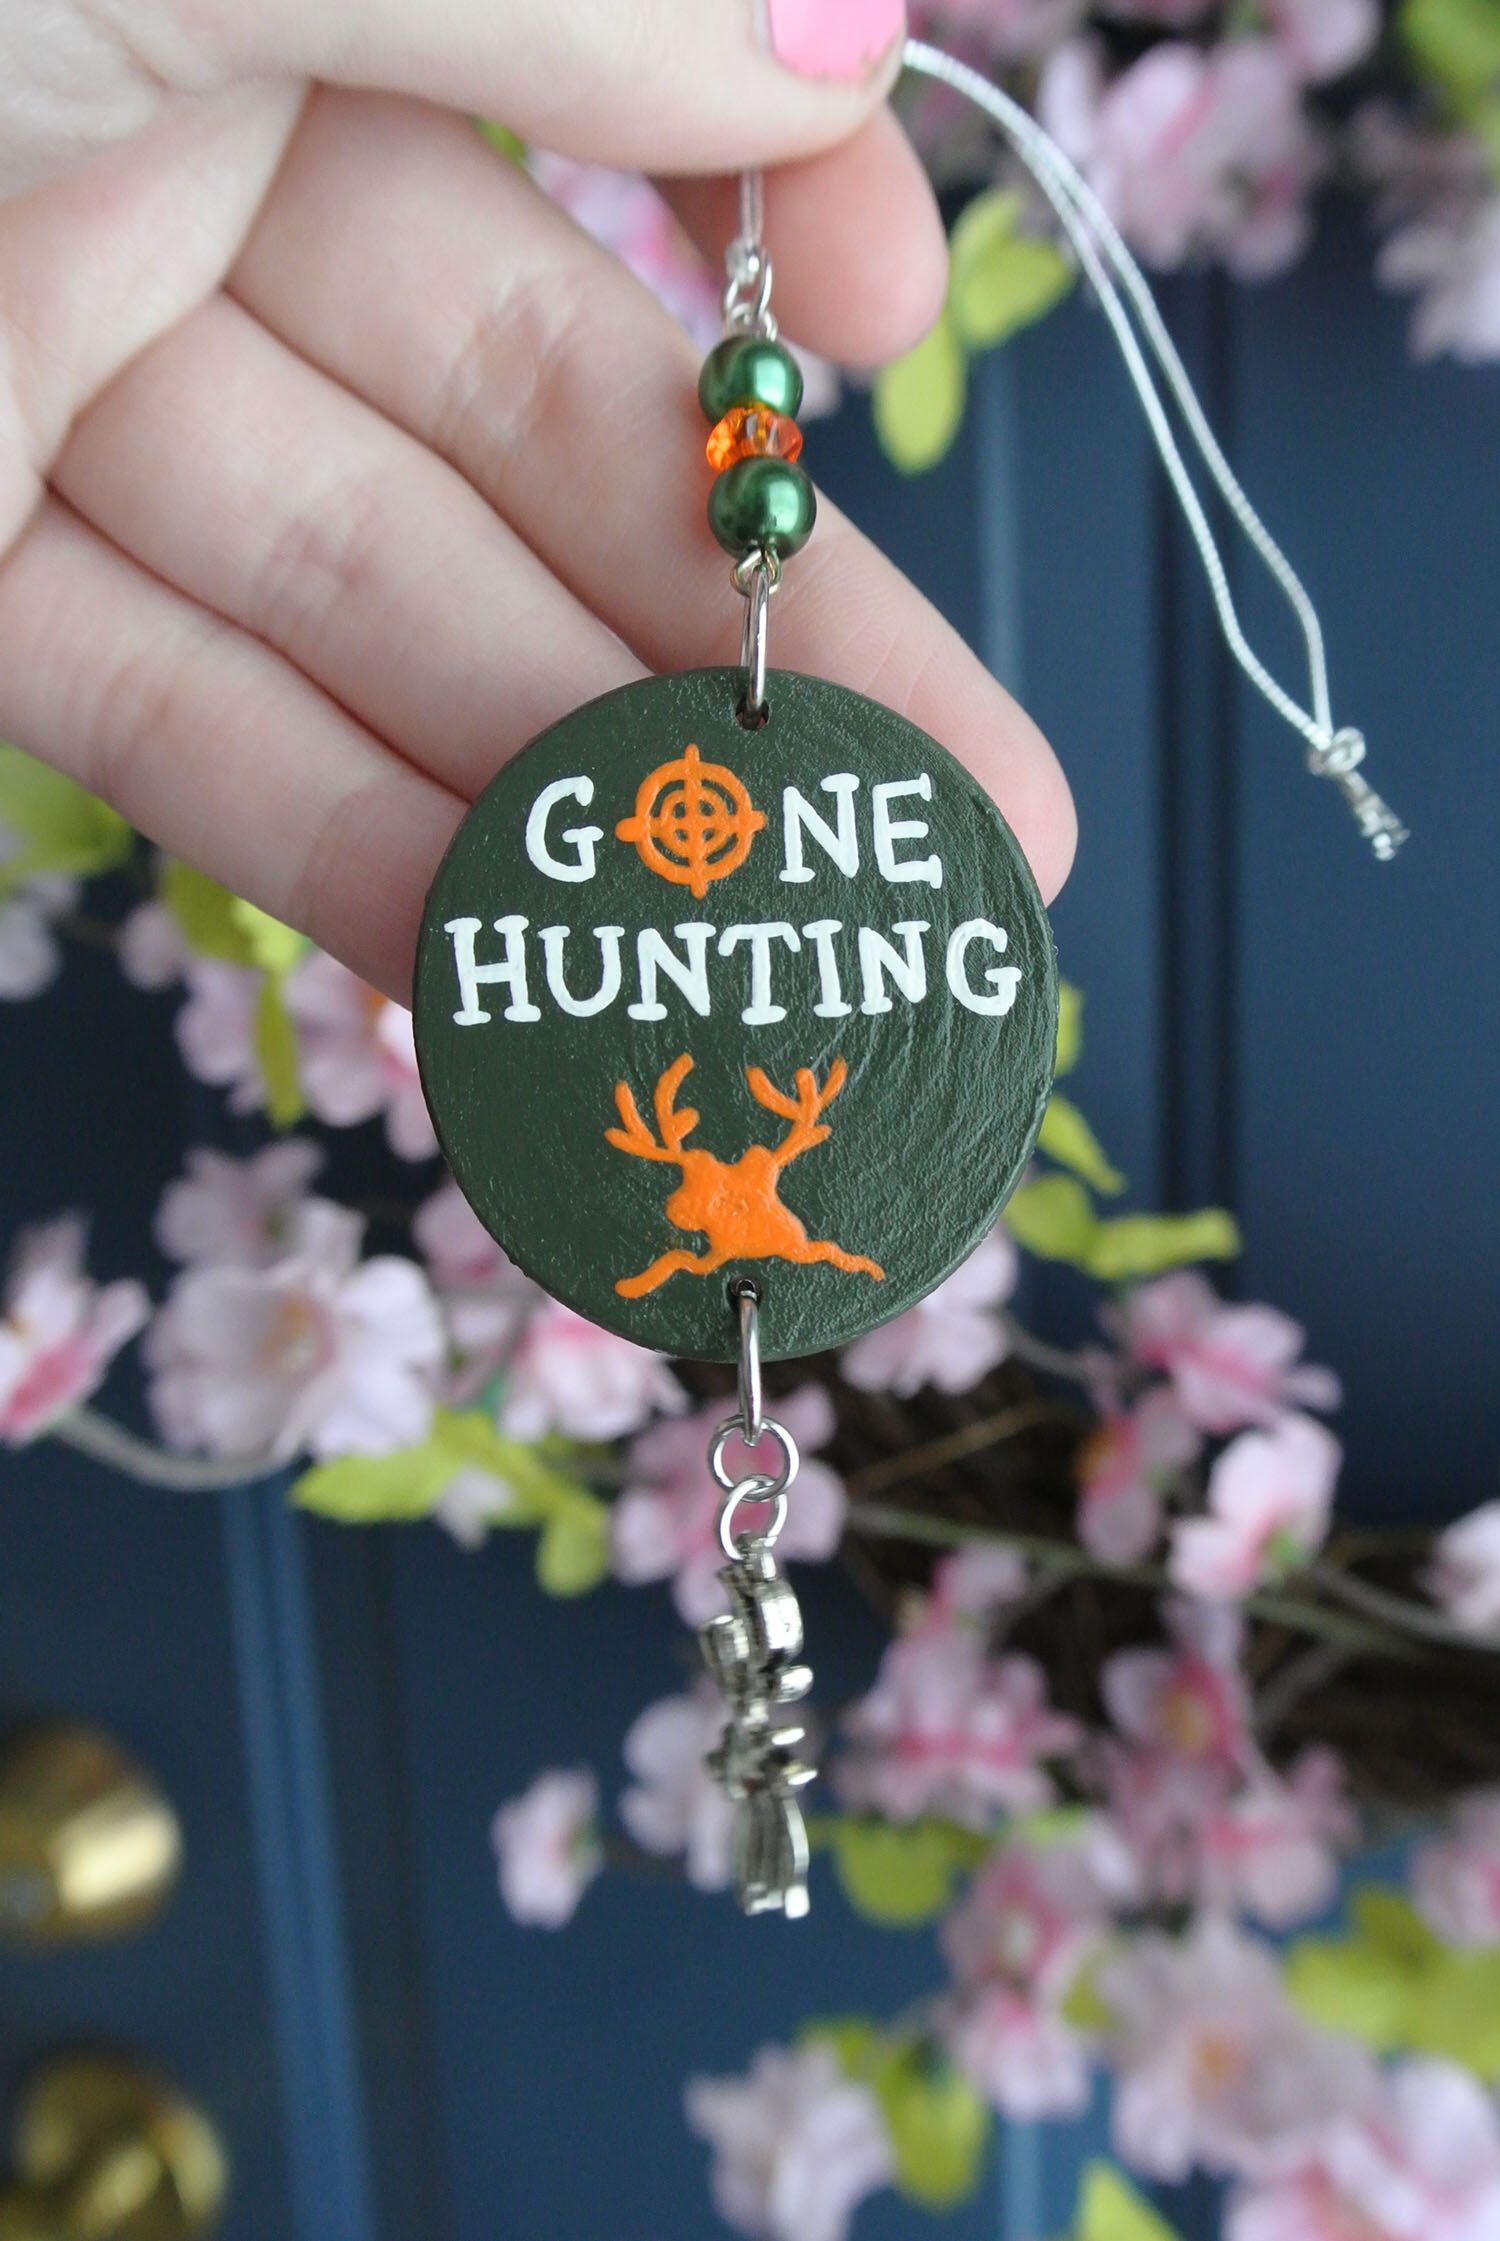 Country truck accessories for men hunter gifts hunting